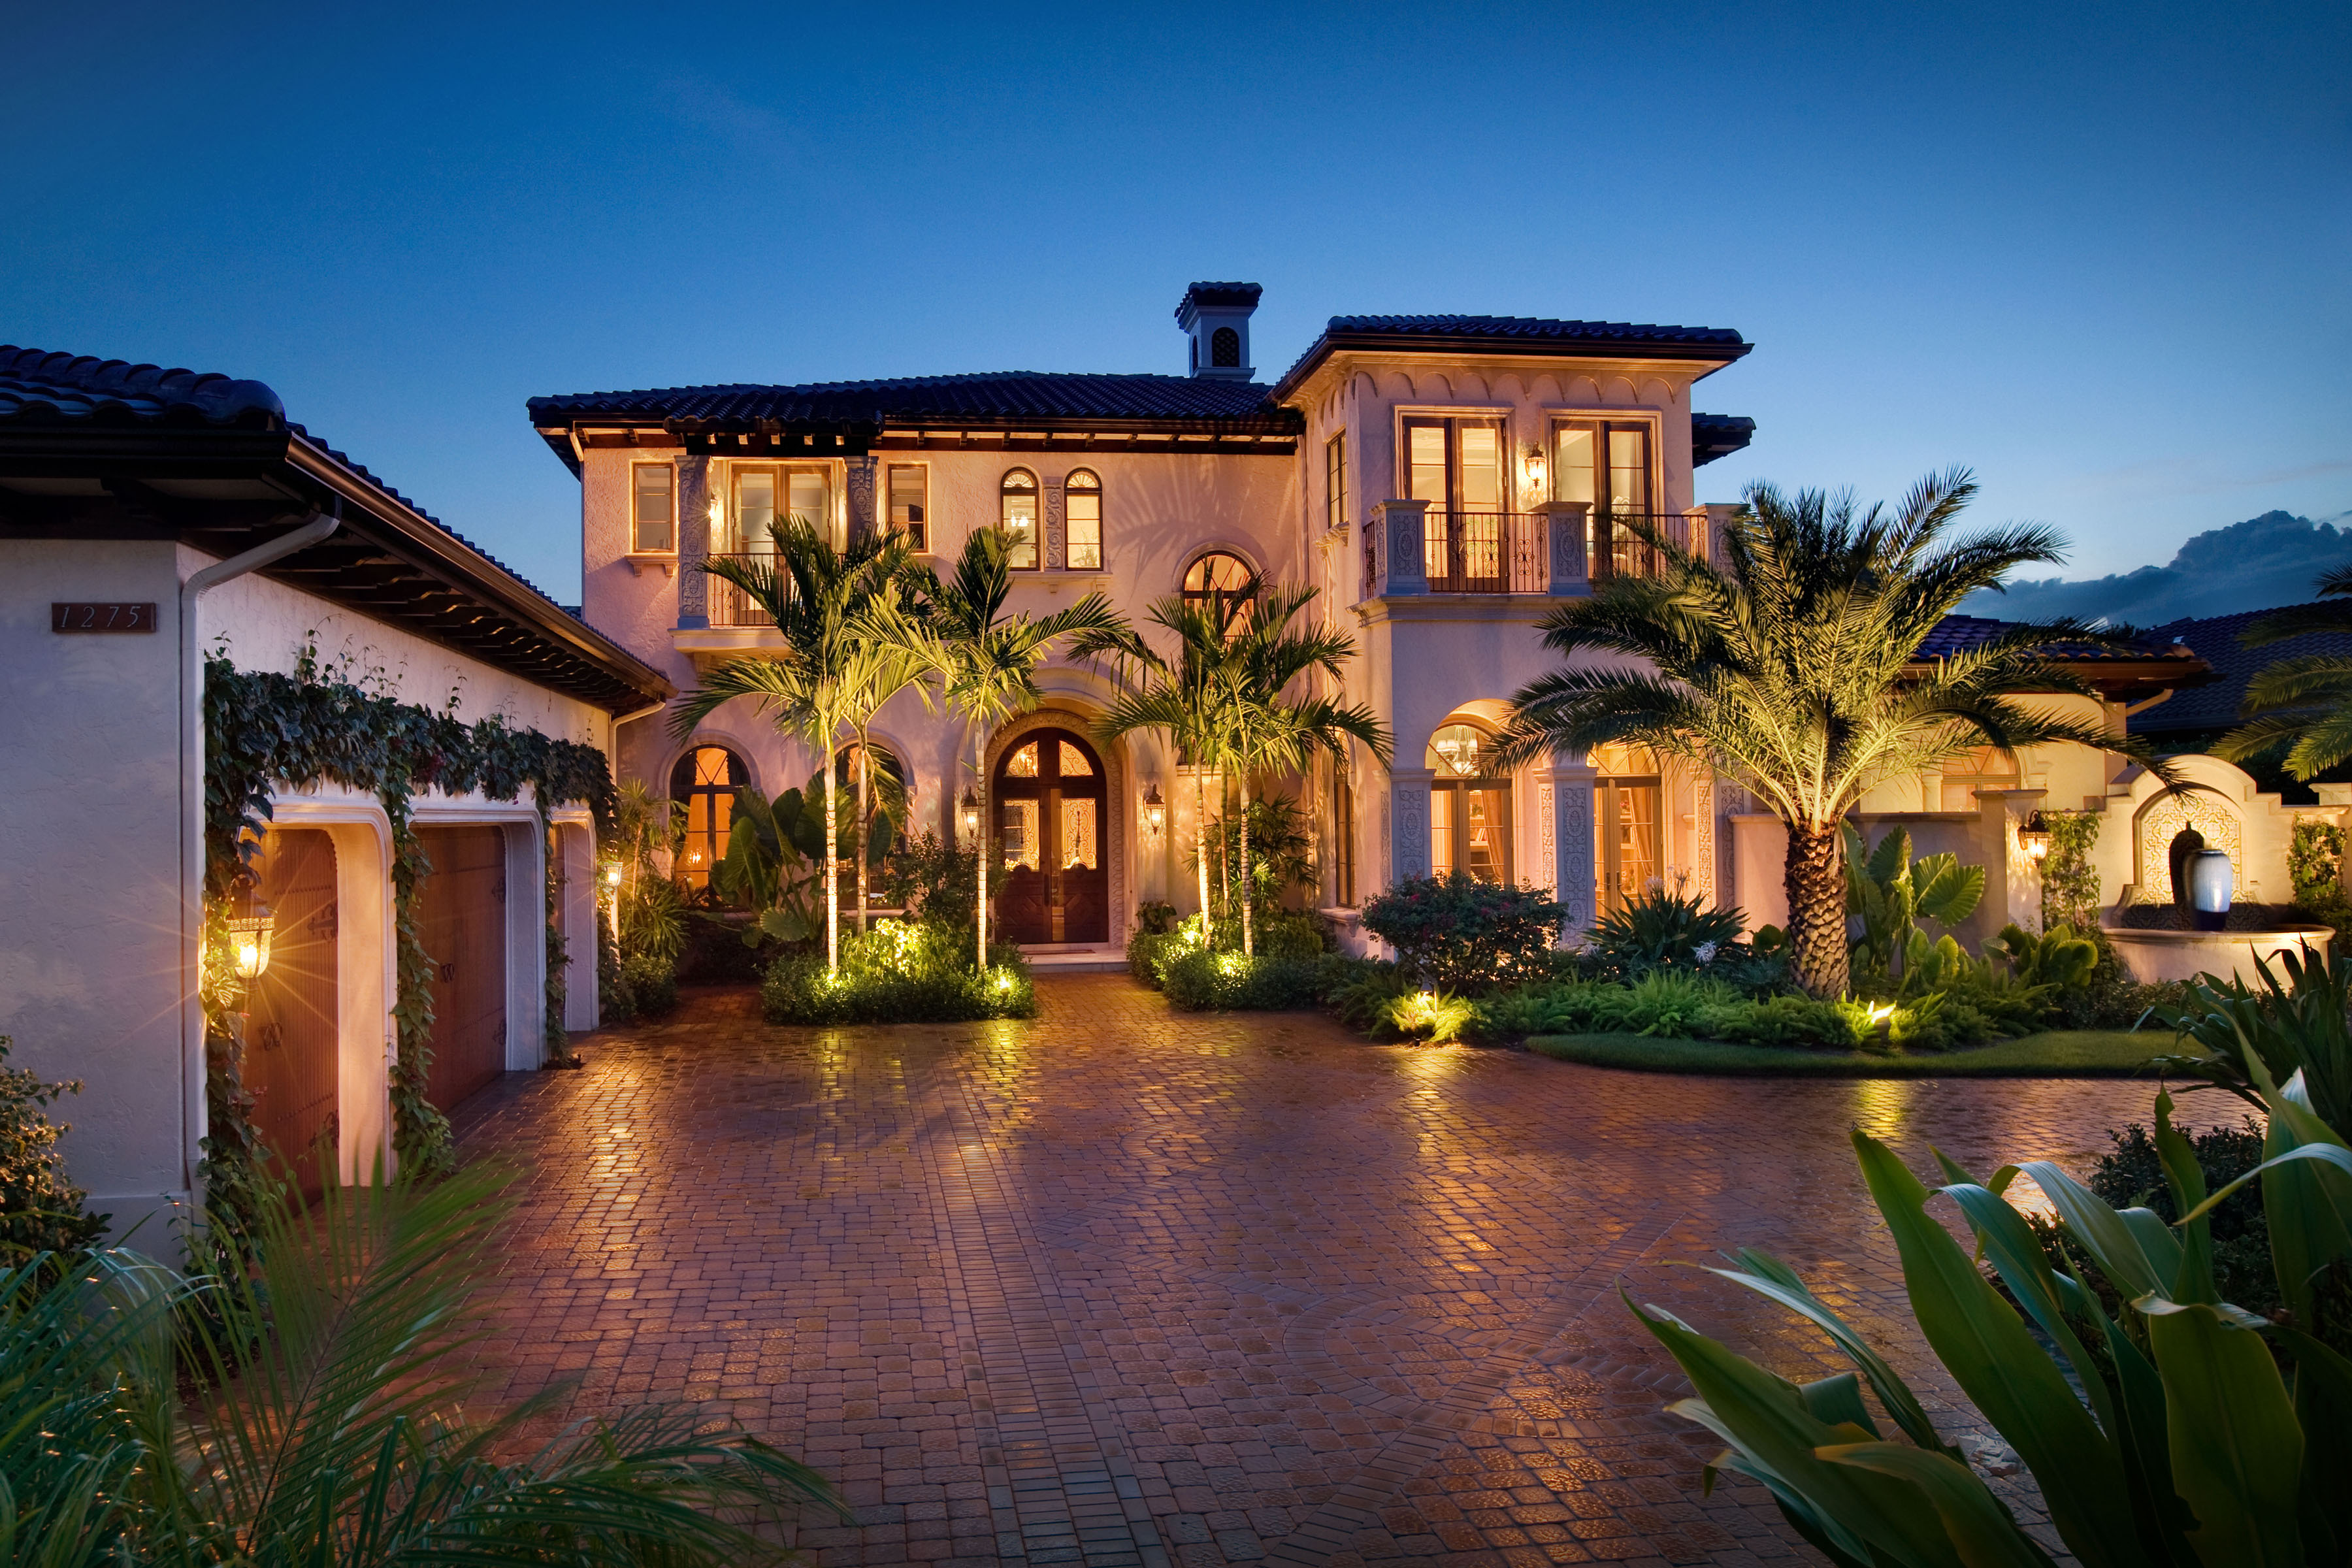 Wall street journal tees up most popular homes naples for Pictures of luxury homes